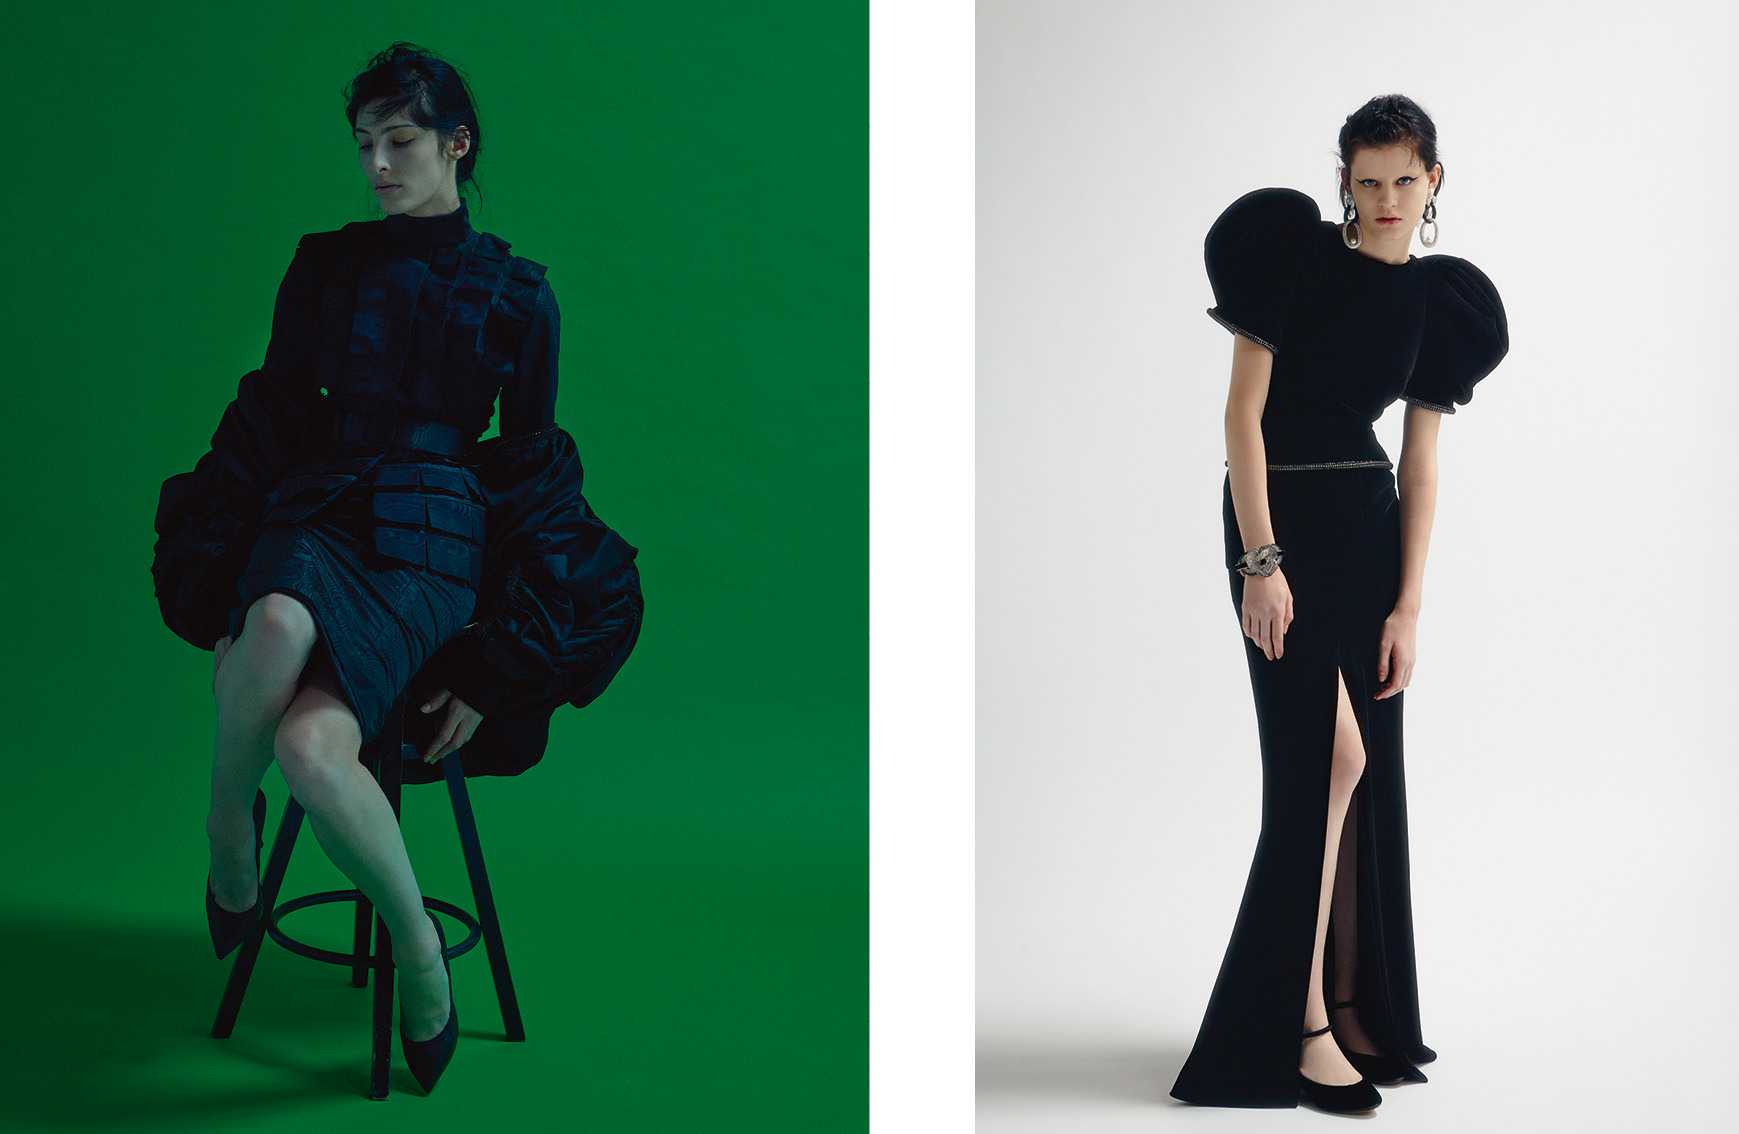 Left: Taffeta jacket and dress, Ziberline and satin bomber,belt and heels, GAULTIER PARIS. Right : silk-velvet ensemble with balloon sleeves and cristal details, earrings, bracelet and heels, GIORGIO ARMANI PRIVÉ.